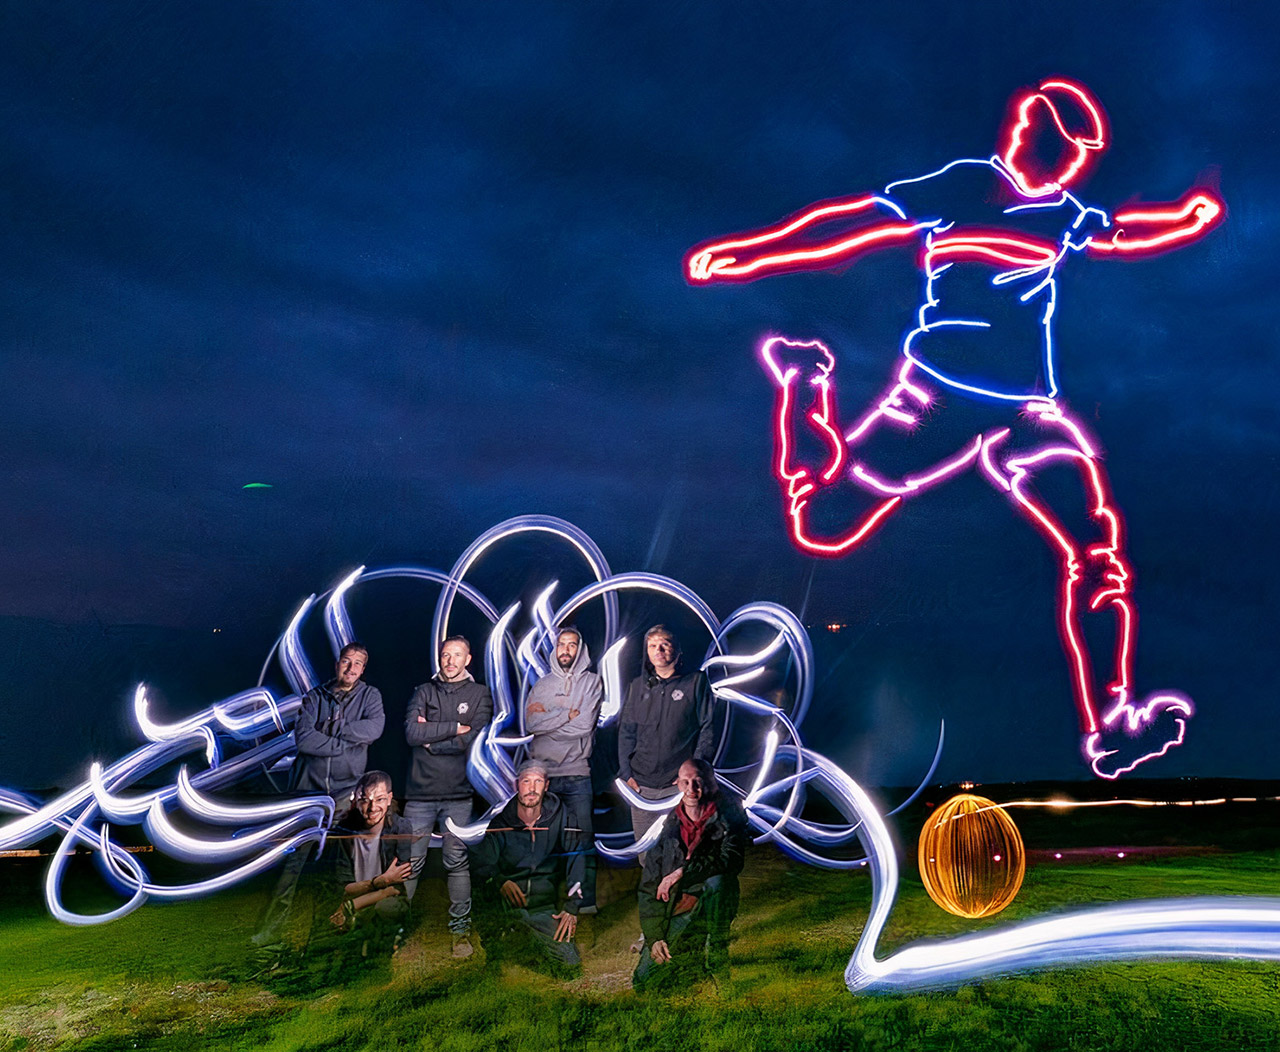 Light Painting Drones